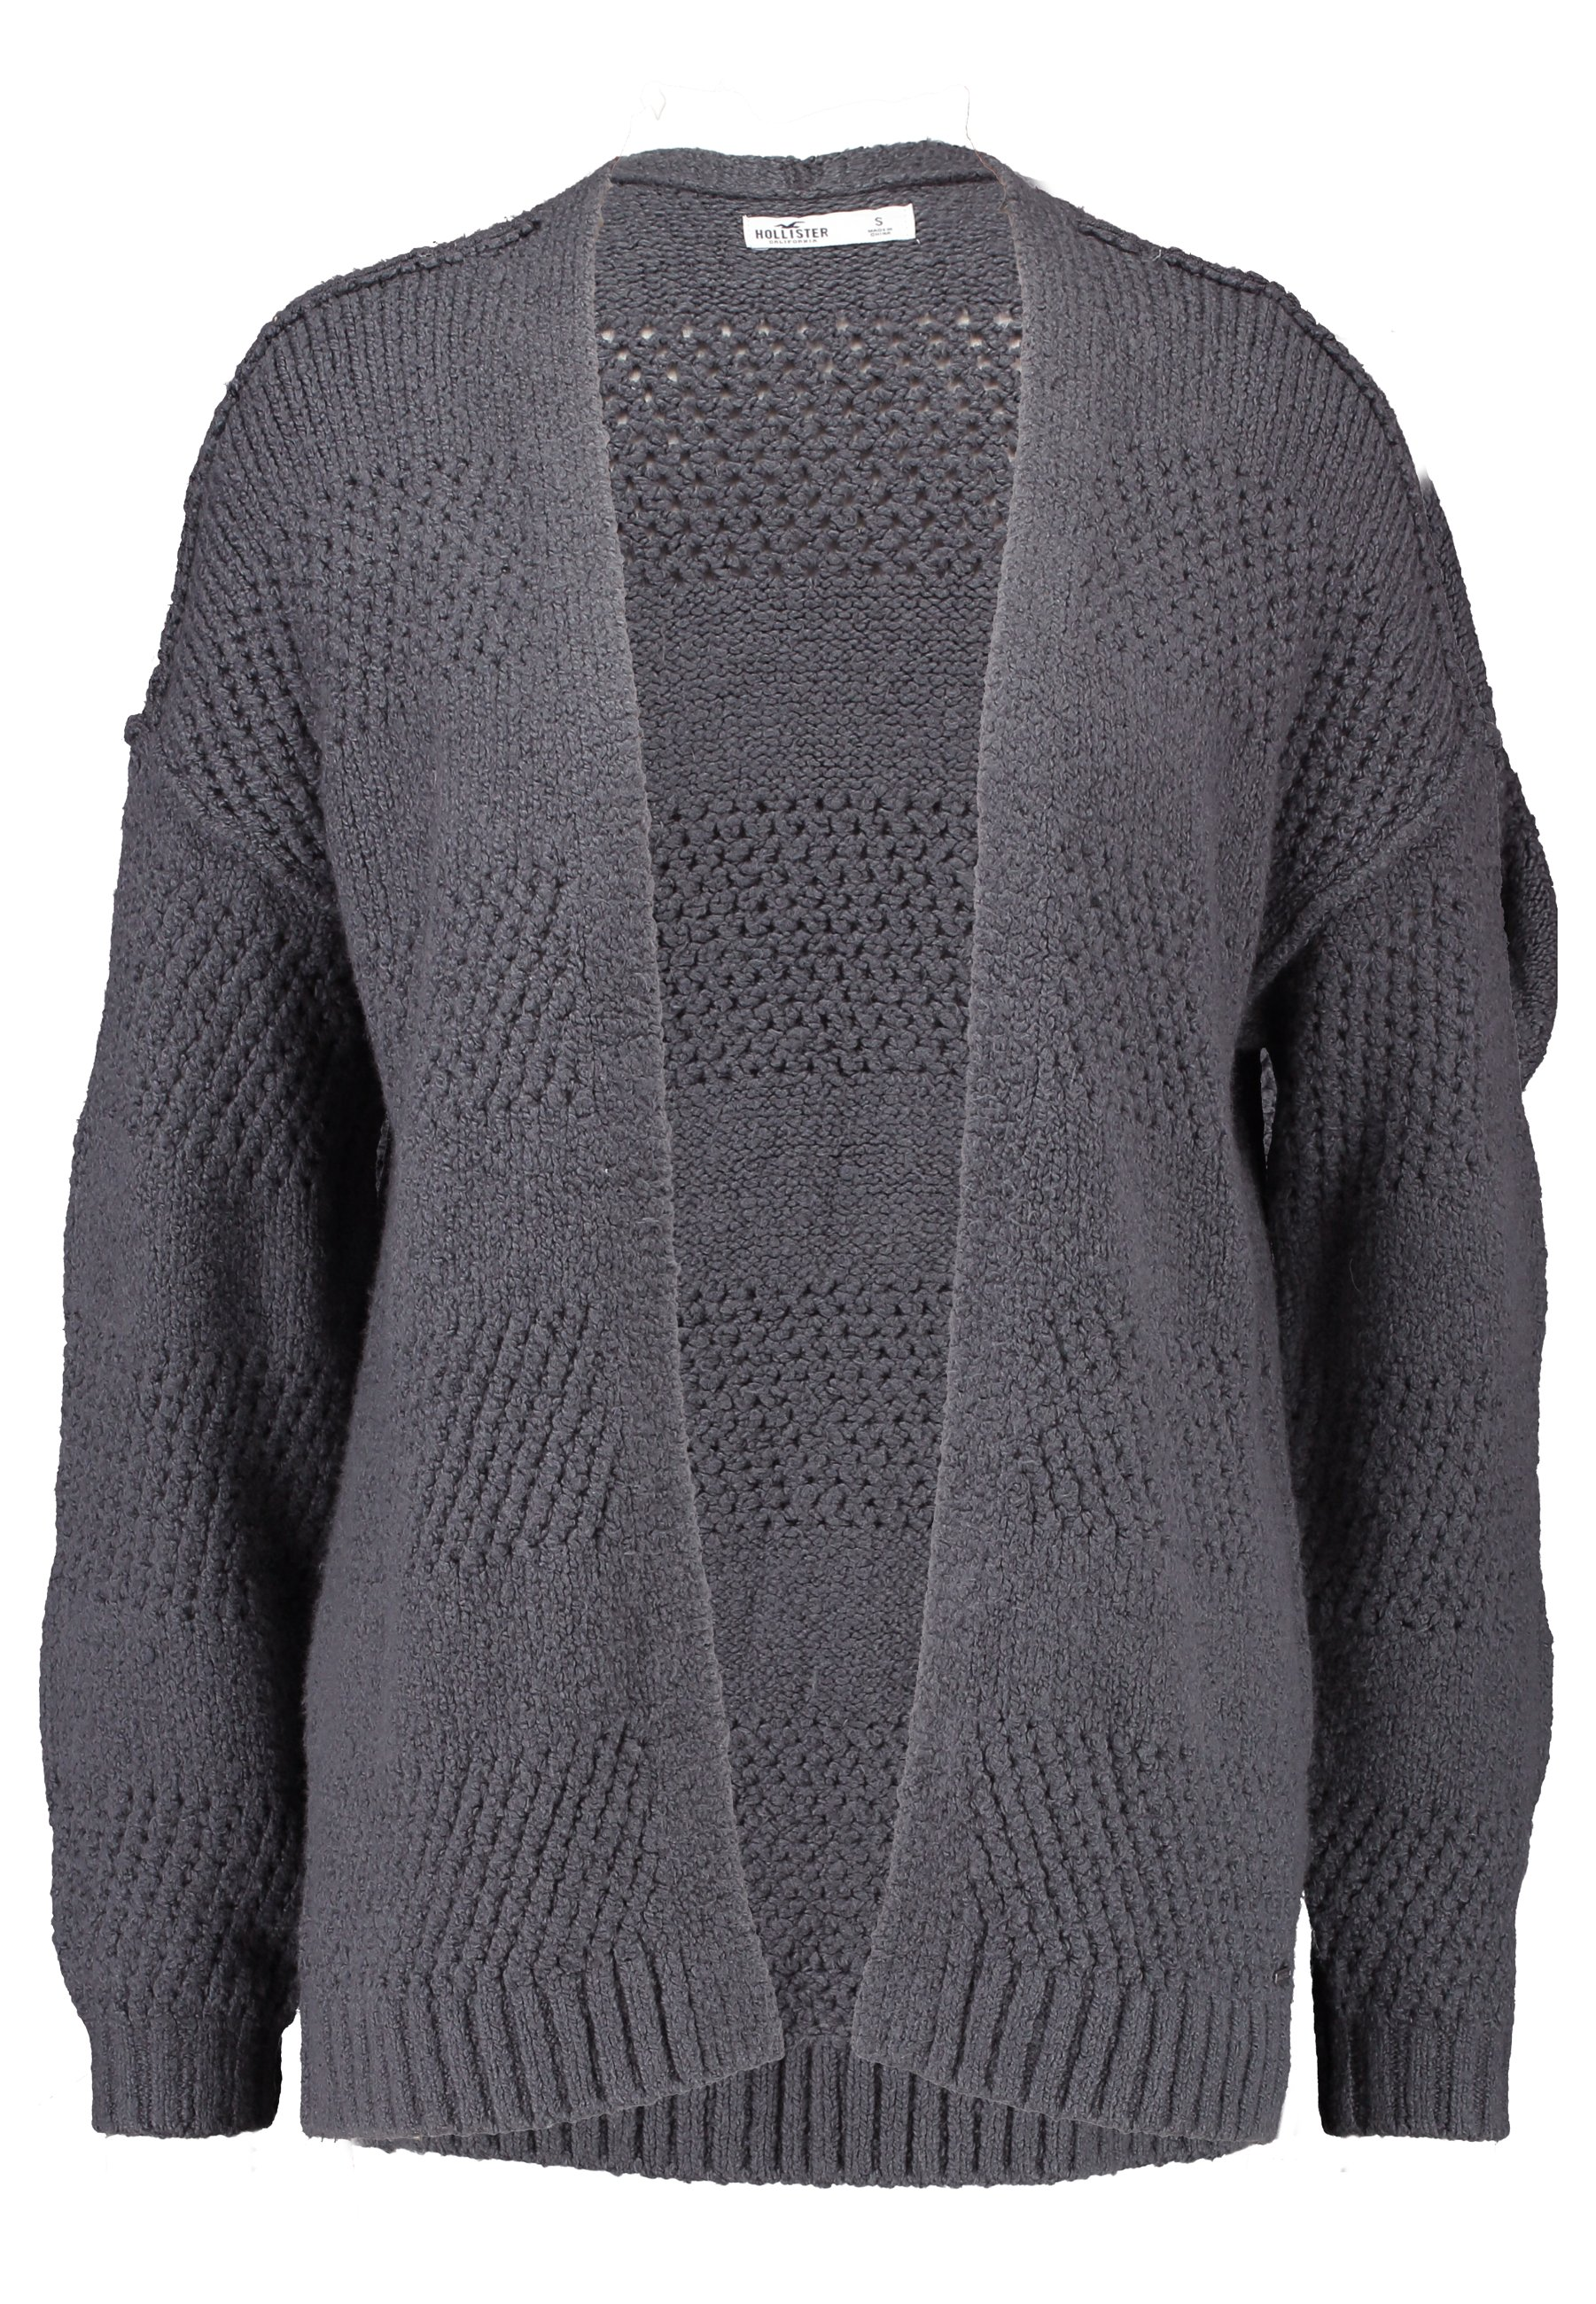 Hollister Co. Airy Stitchy Cardi - Strikjakke /cardigans Dark Grey